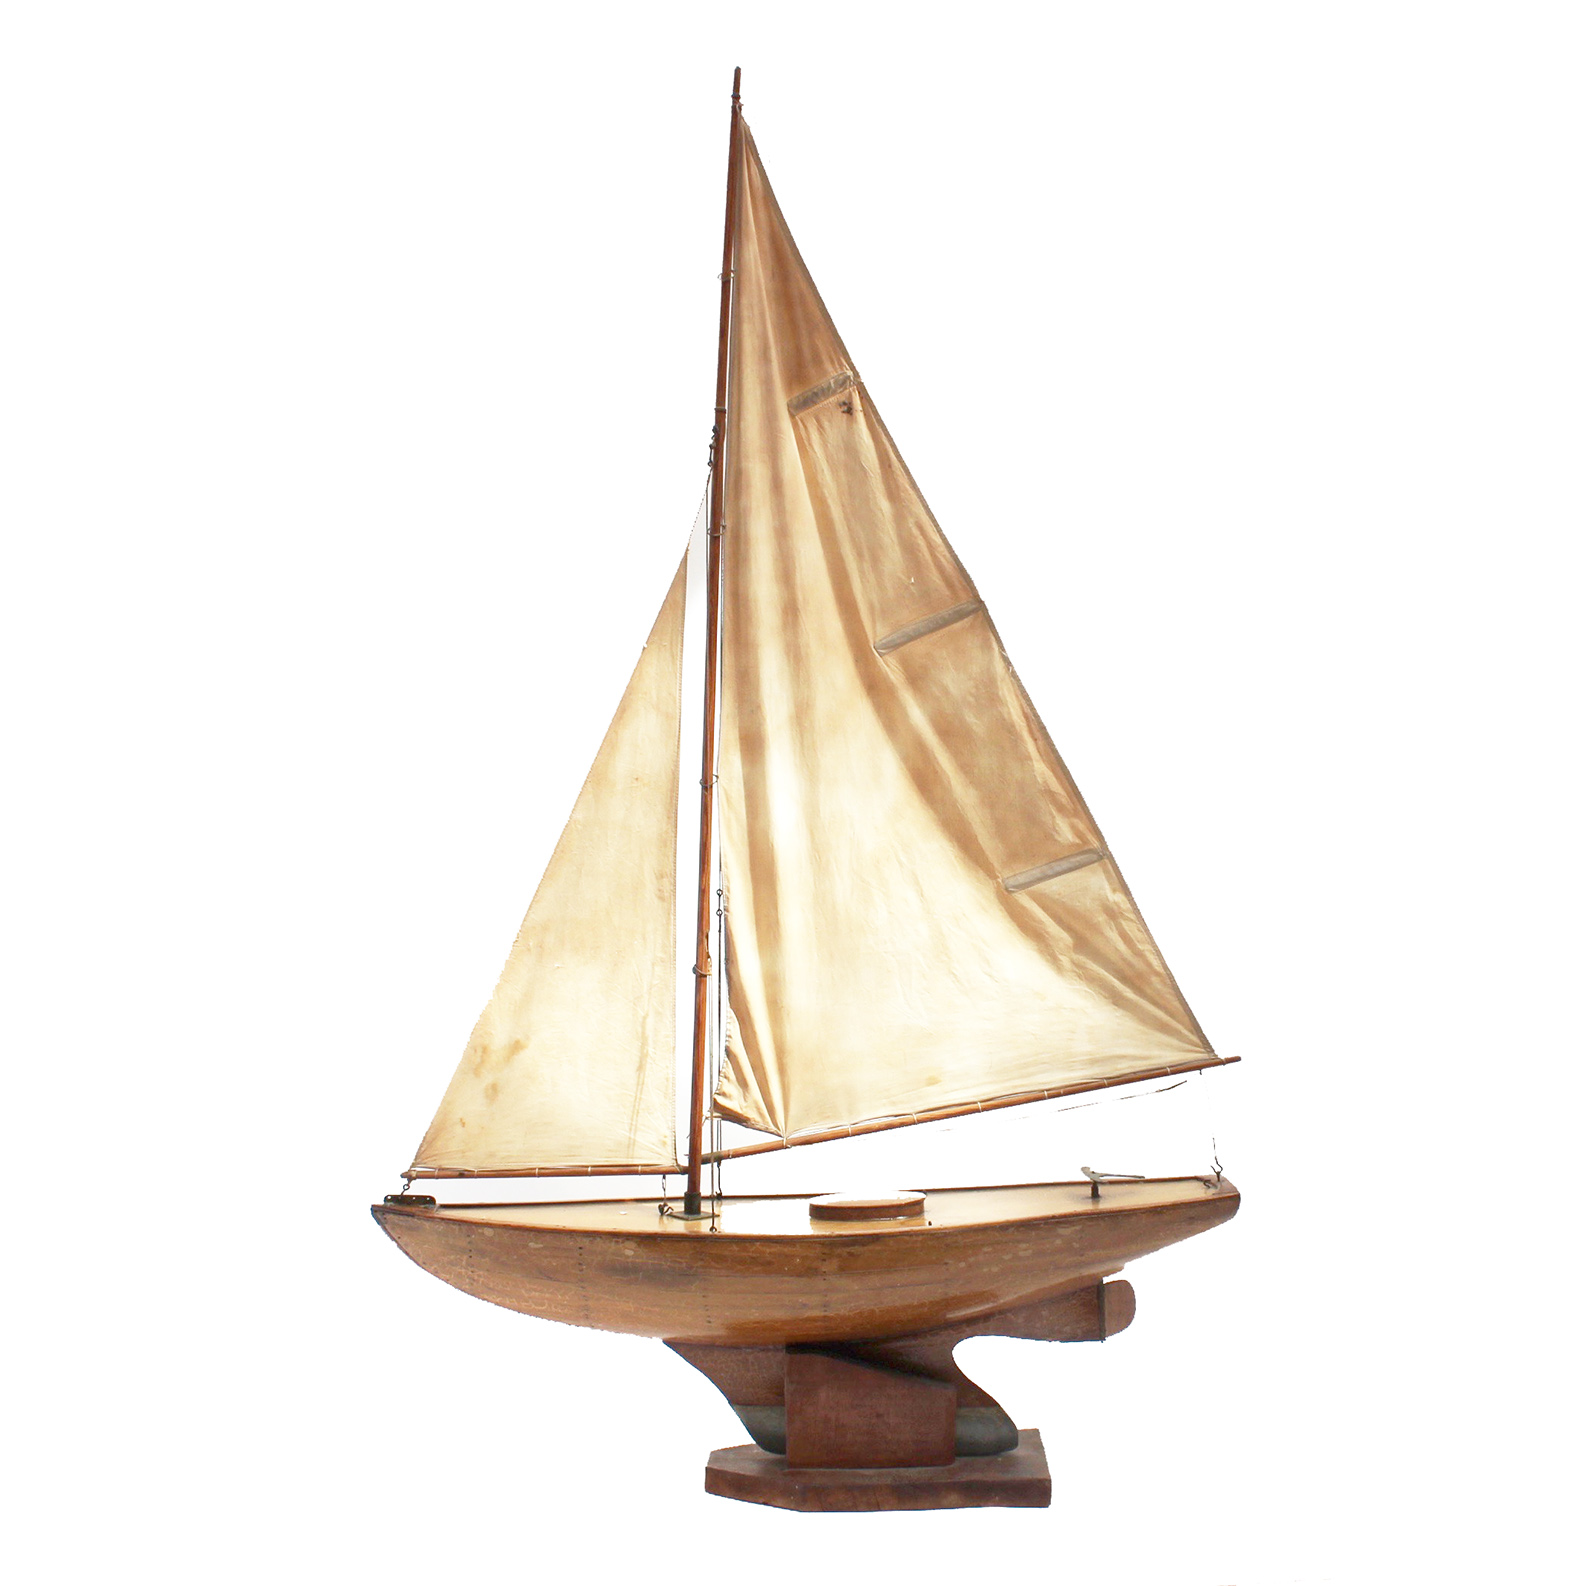 30 inch restricted model racing yacht